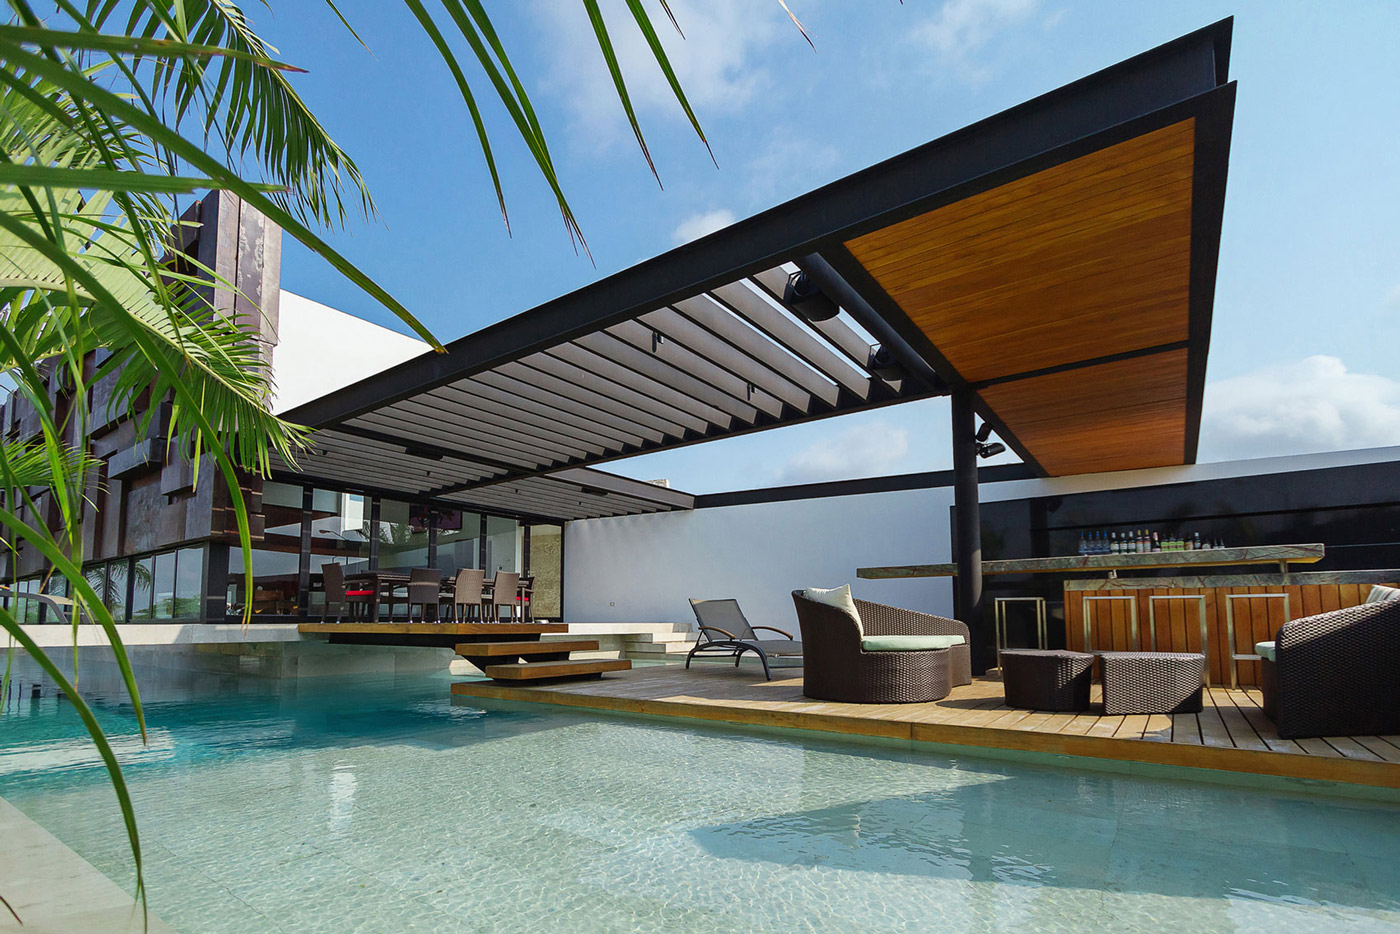 Pool, Veranda, Deck, Terrace, Outdoor Furniture, Contemporary Residence in Merida, Yucatan